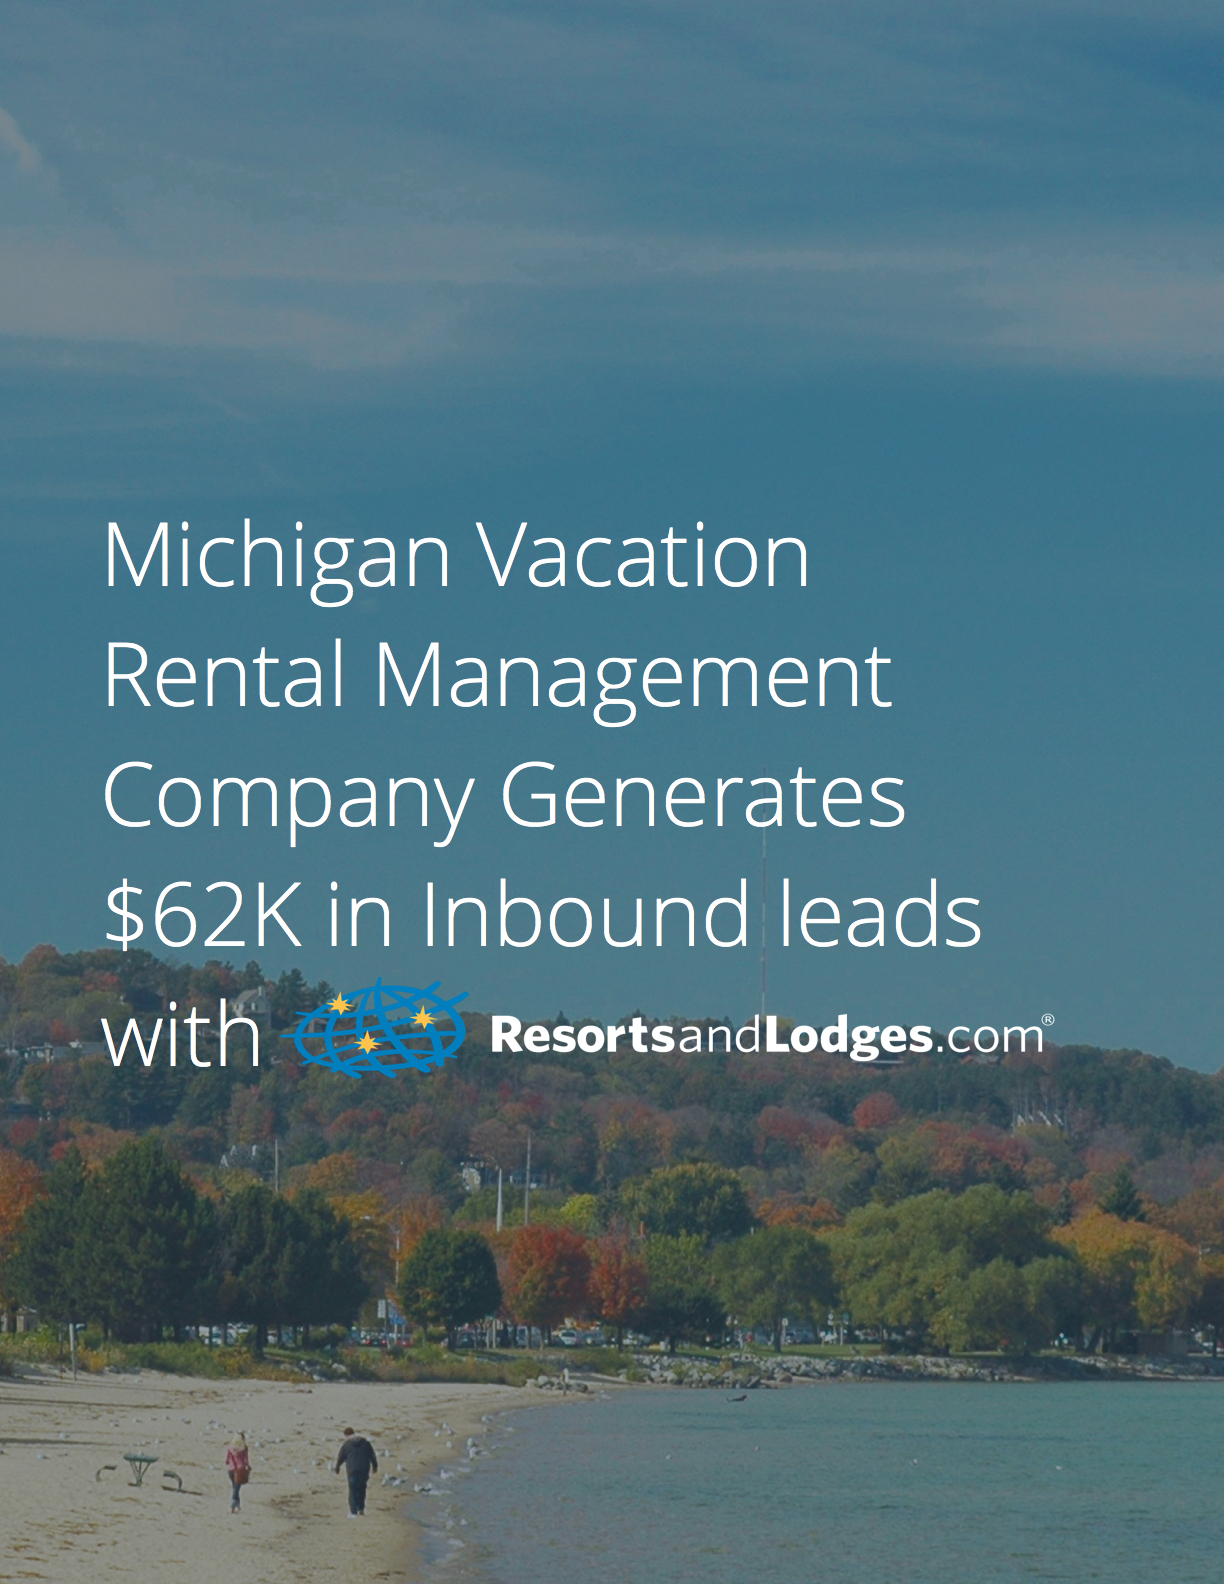 Michigan Visi Up North Vacation Rentals Case Study